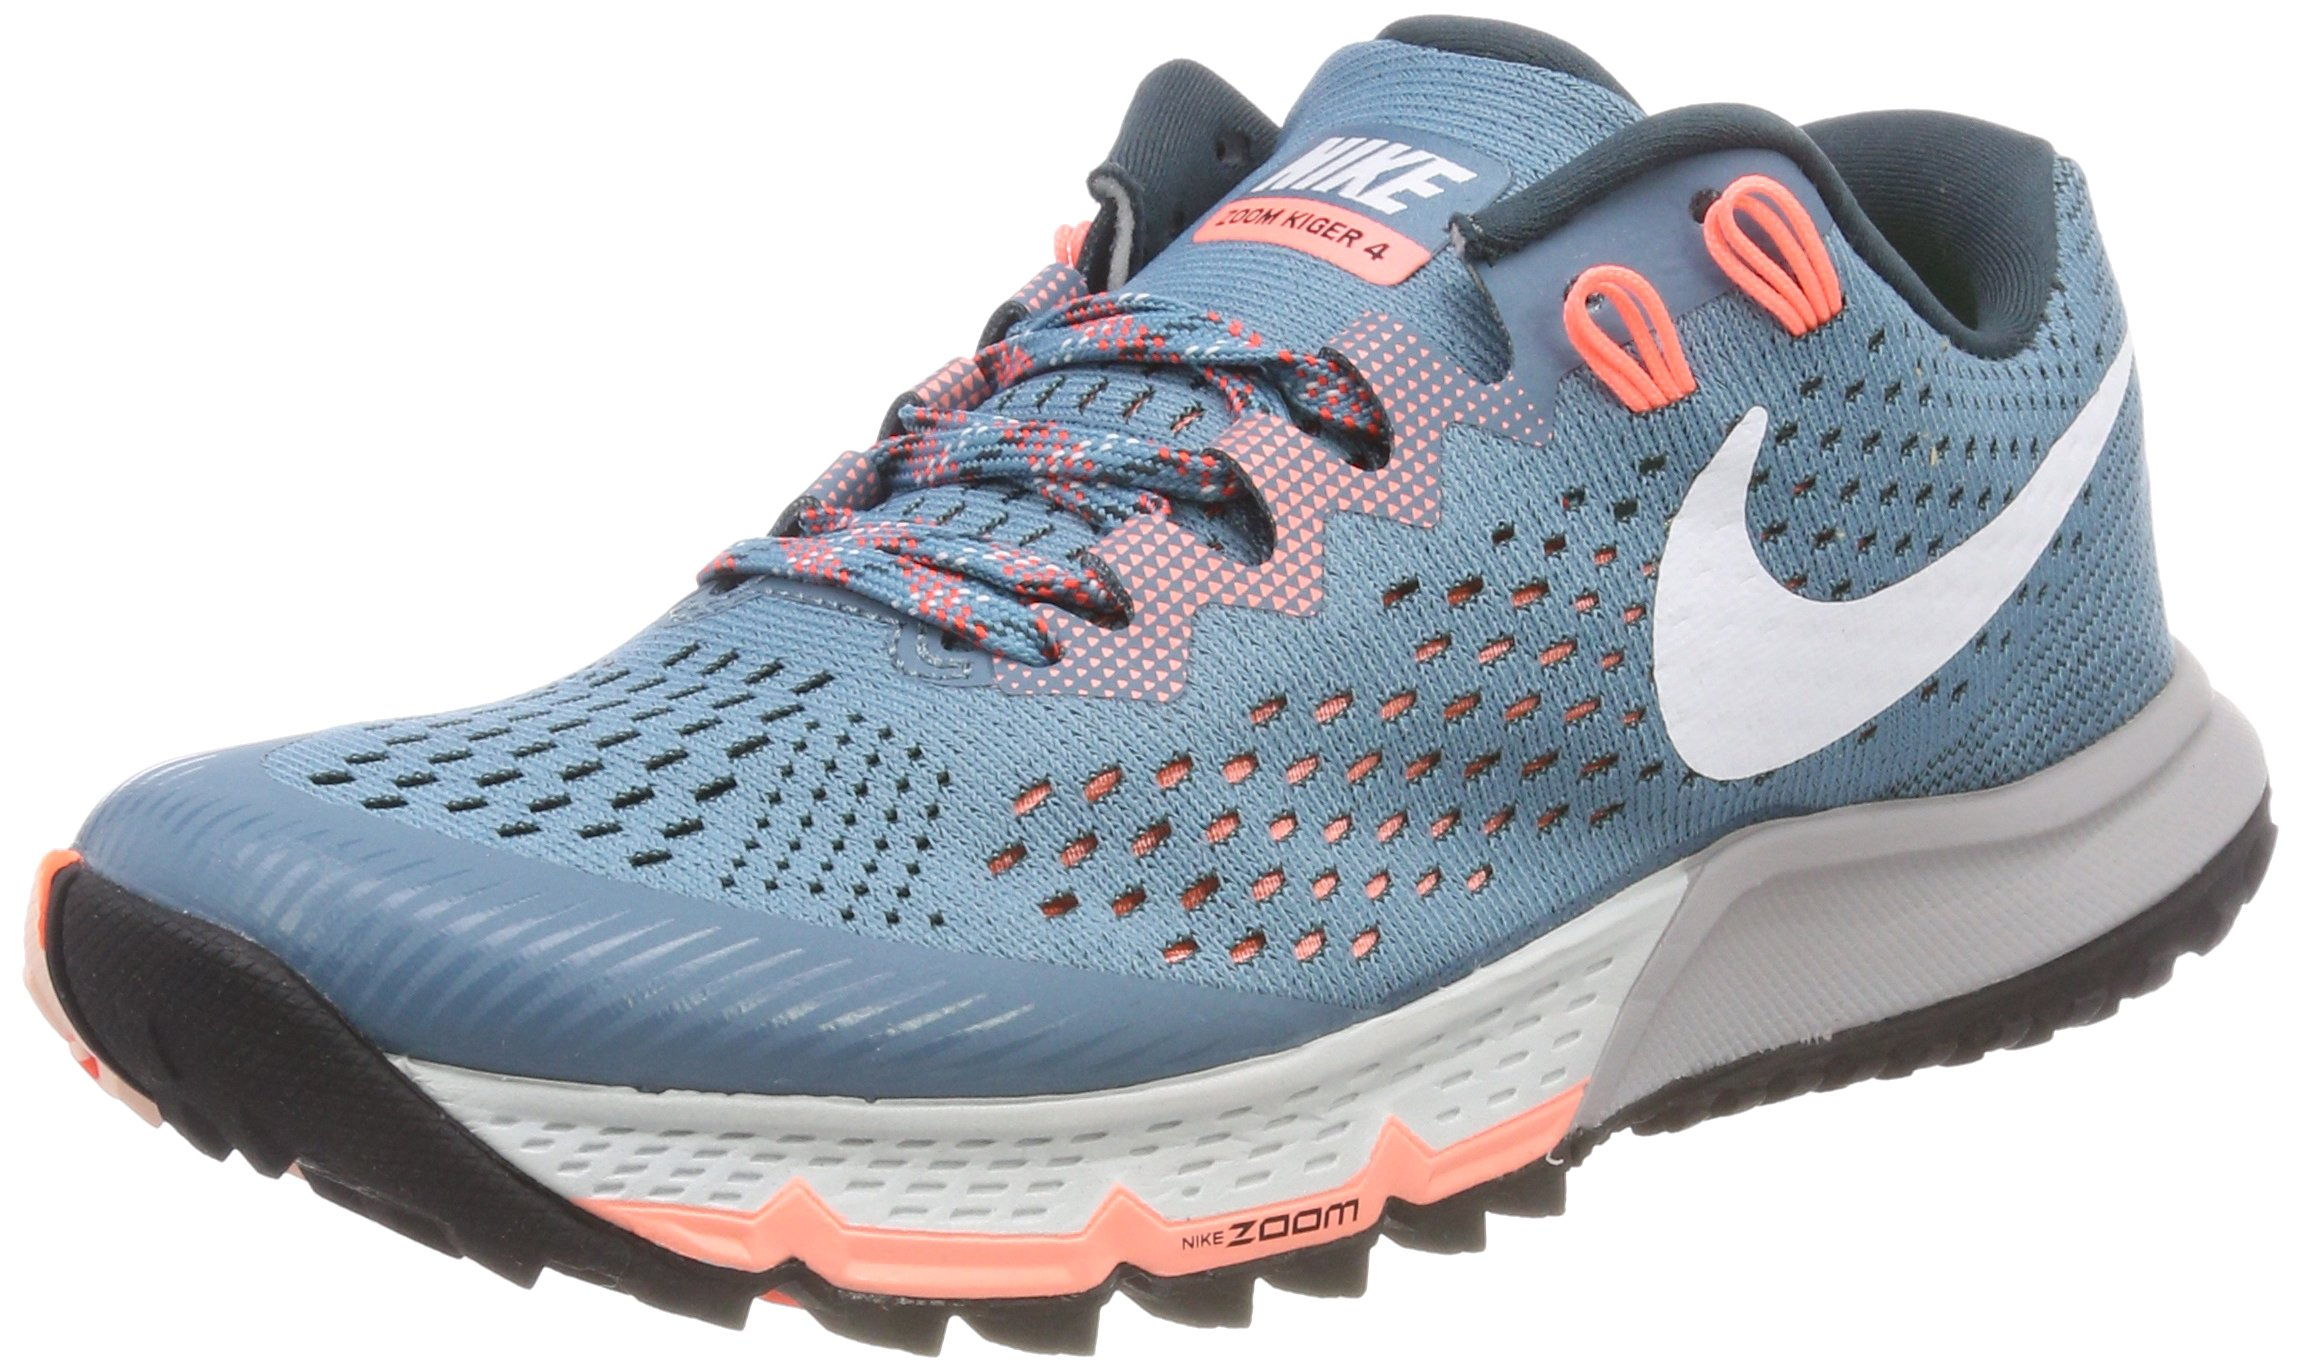 low priced e483b 9c636 Galleon - Nike Women s Air Zoom Terra Kiger 4 Trail Running, Noise  Aqua White-Jungle, 8